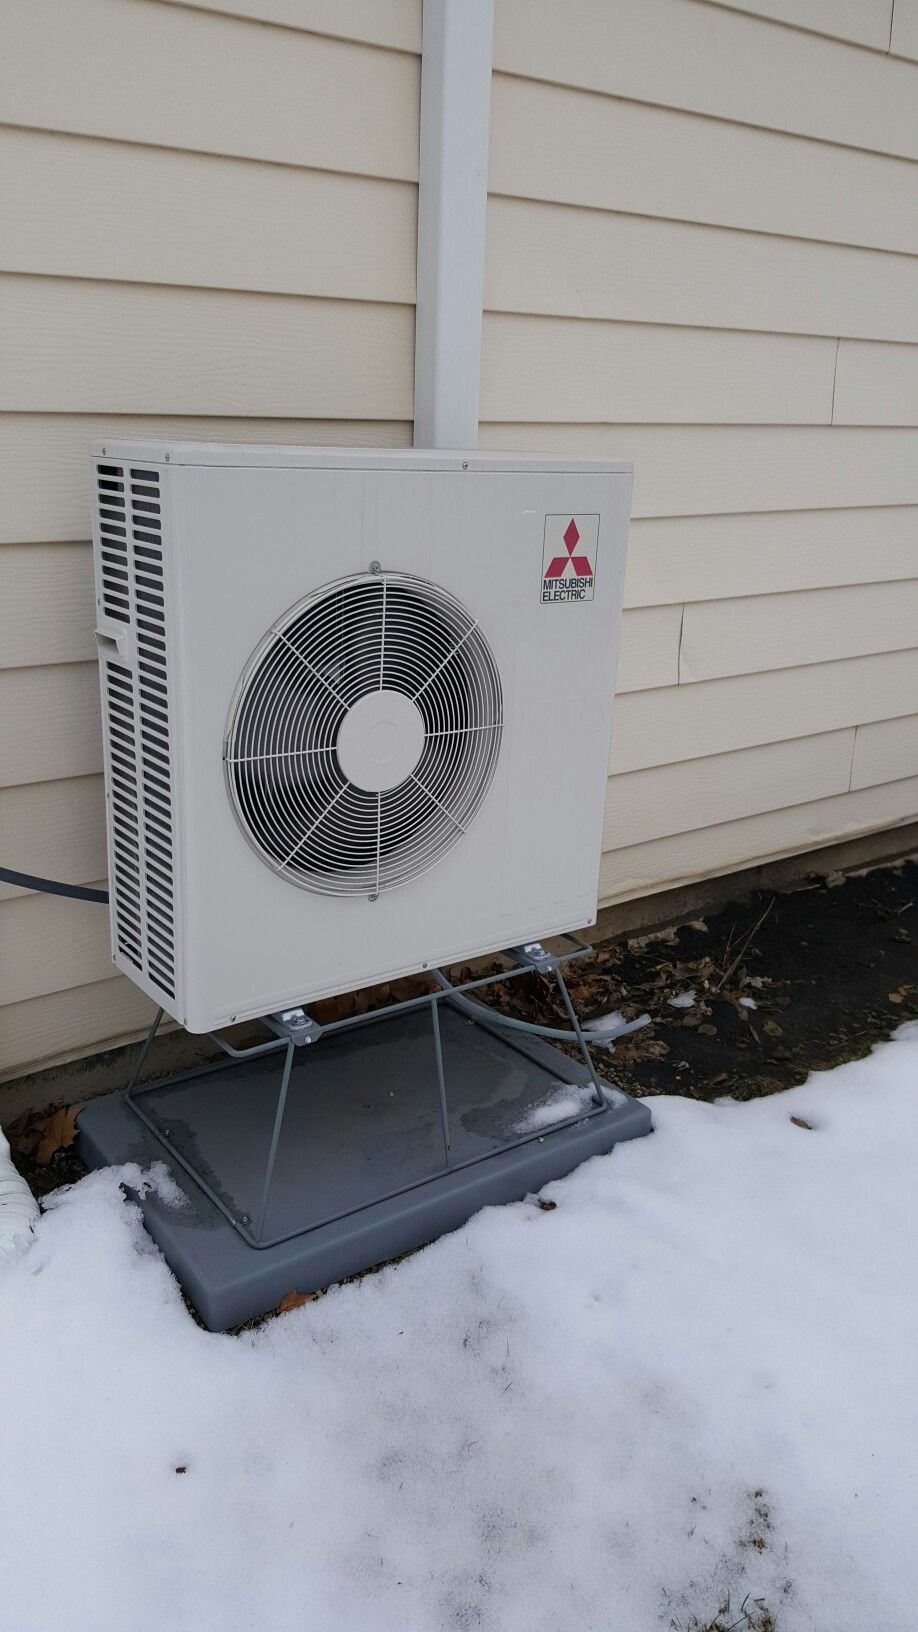 Mitsubishi MUZFH18NA HyperHeating heat pump installed by